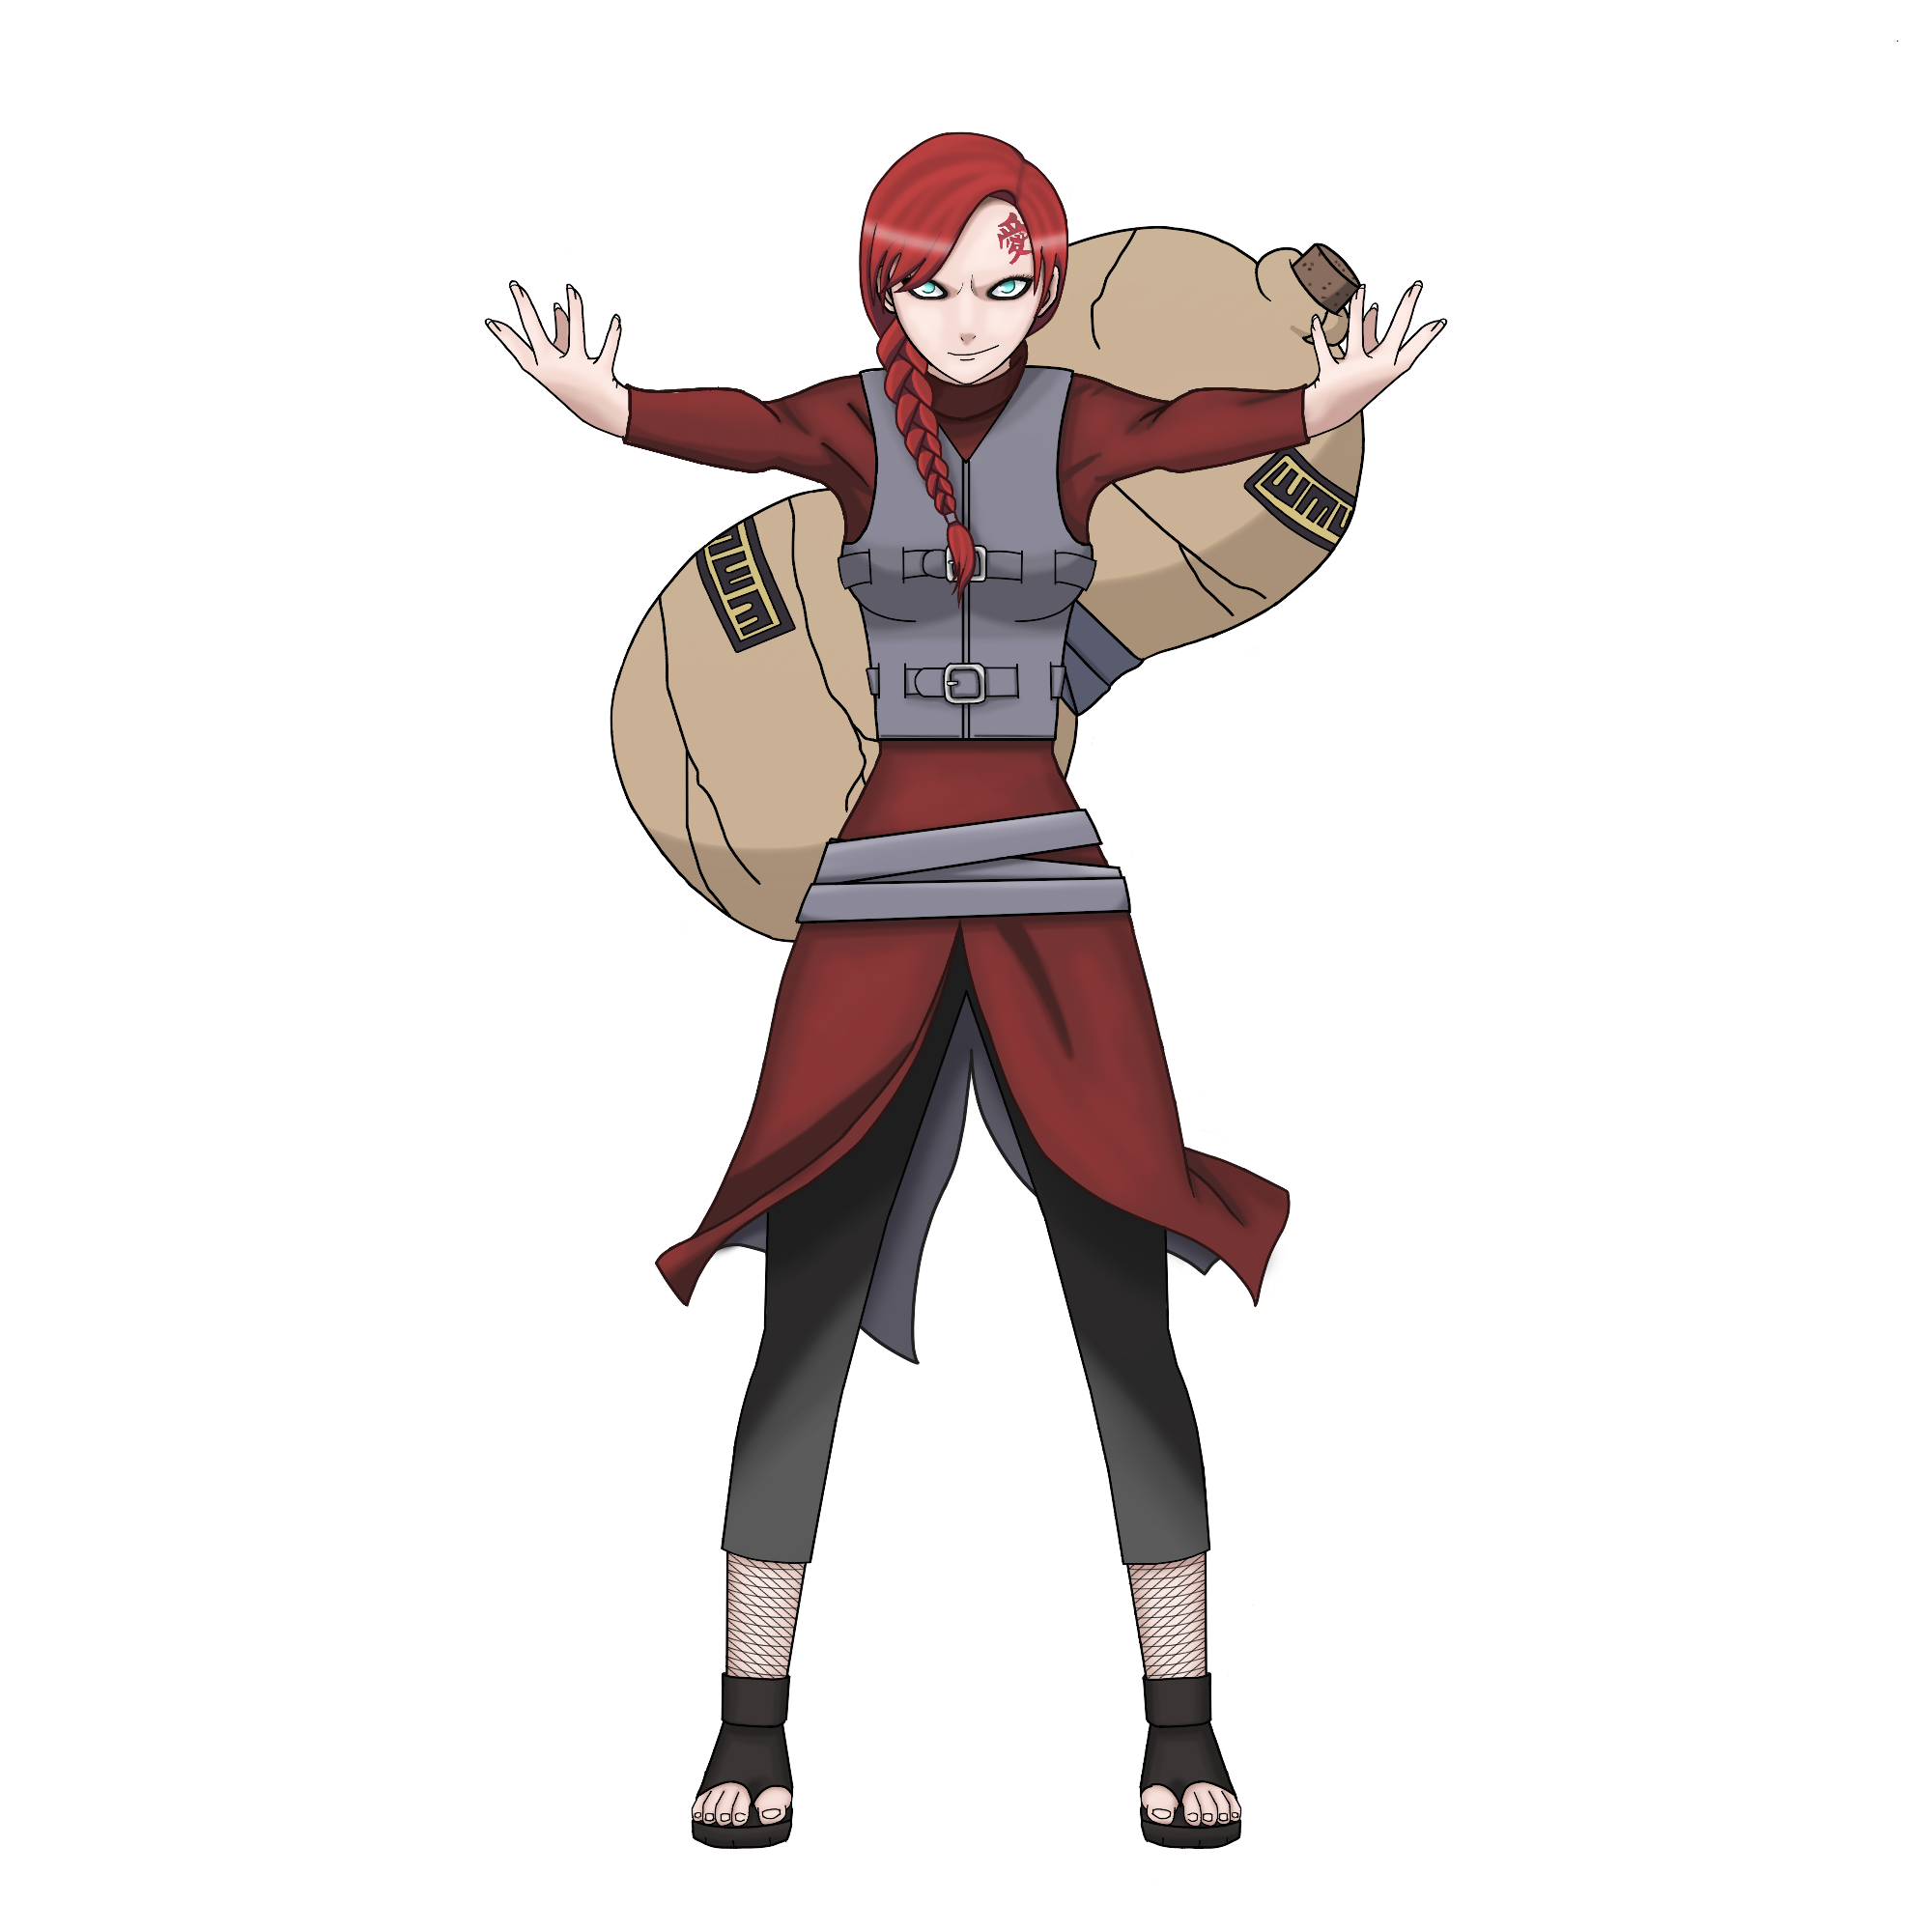 Female Gaara By Toodramatic911 On DeviantArt